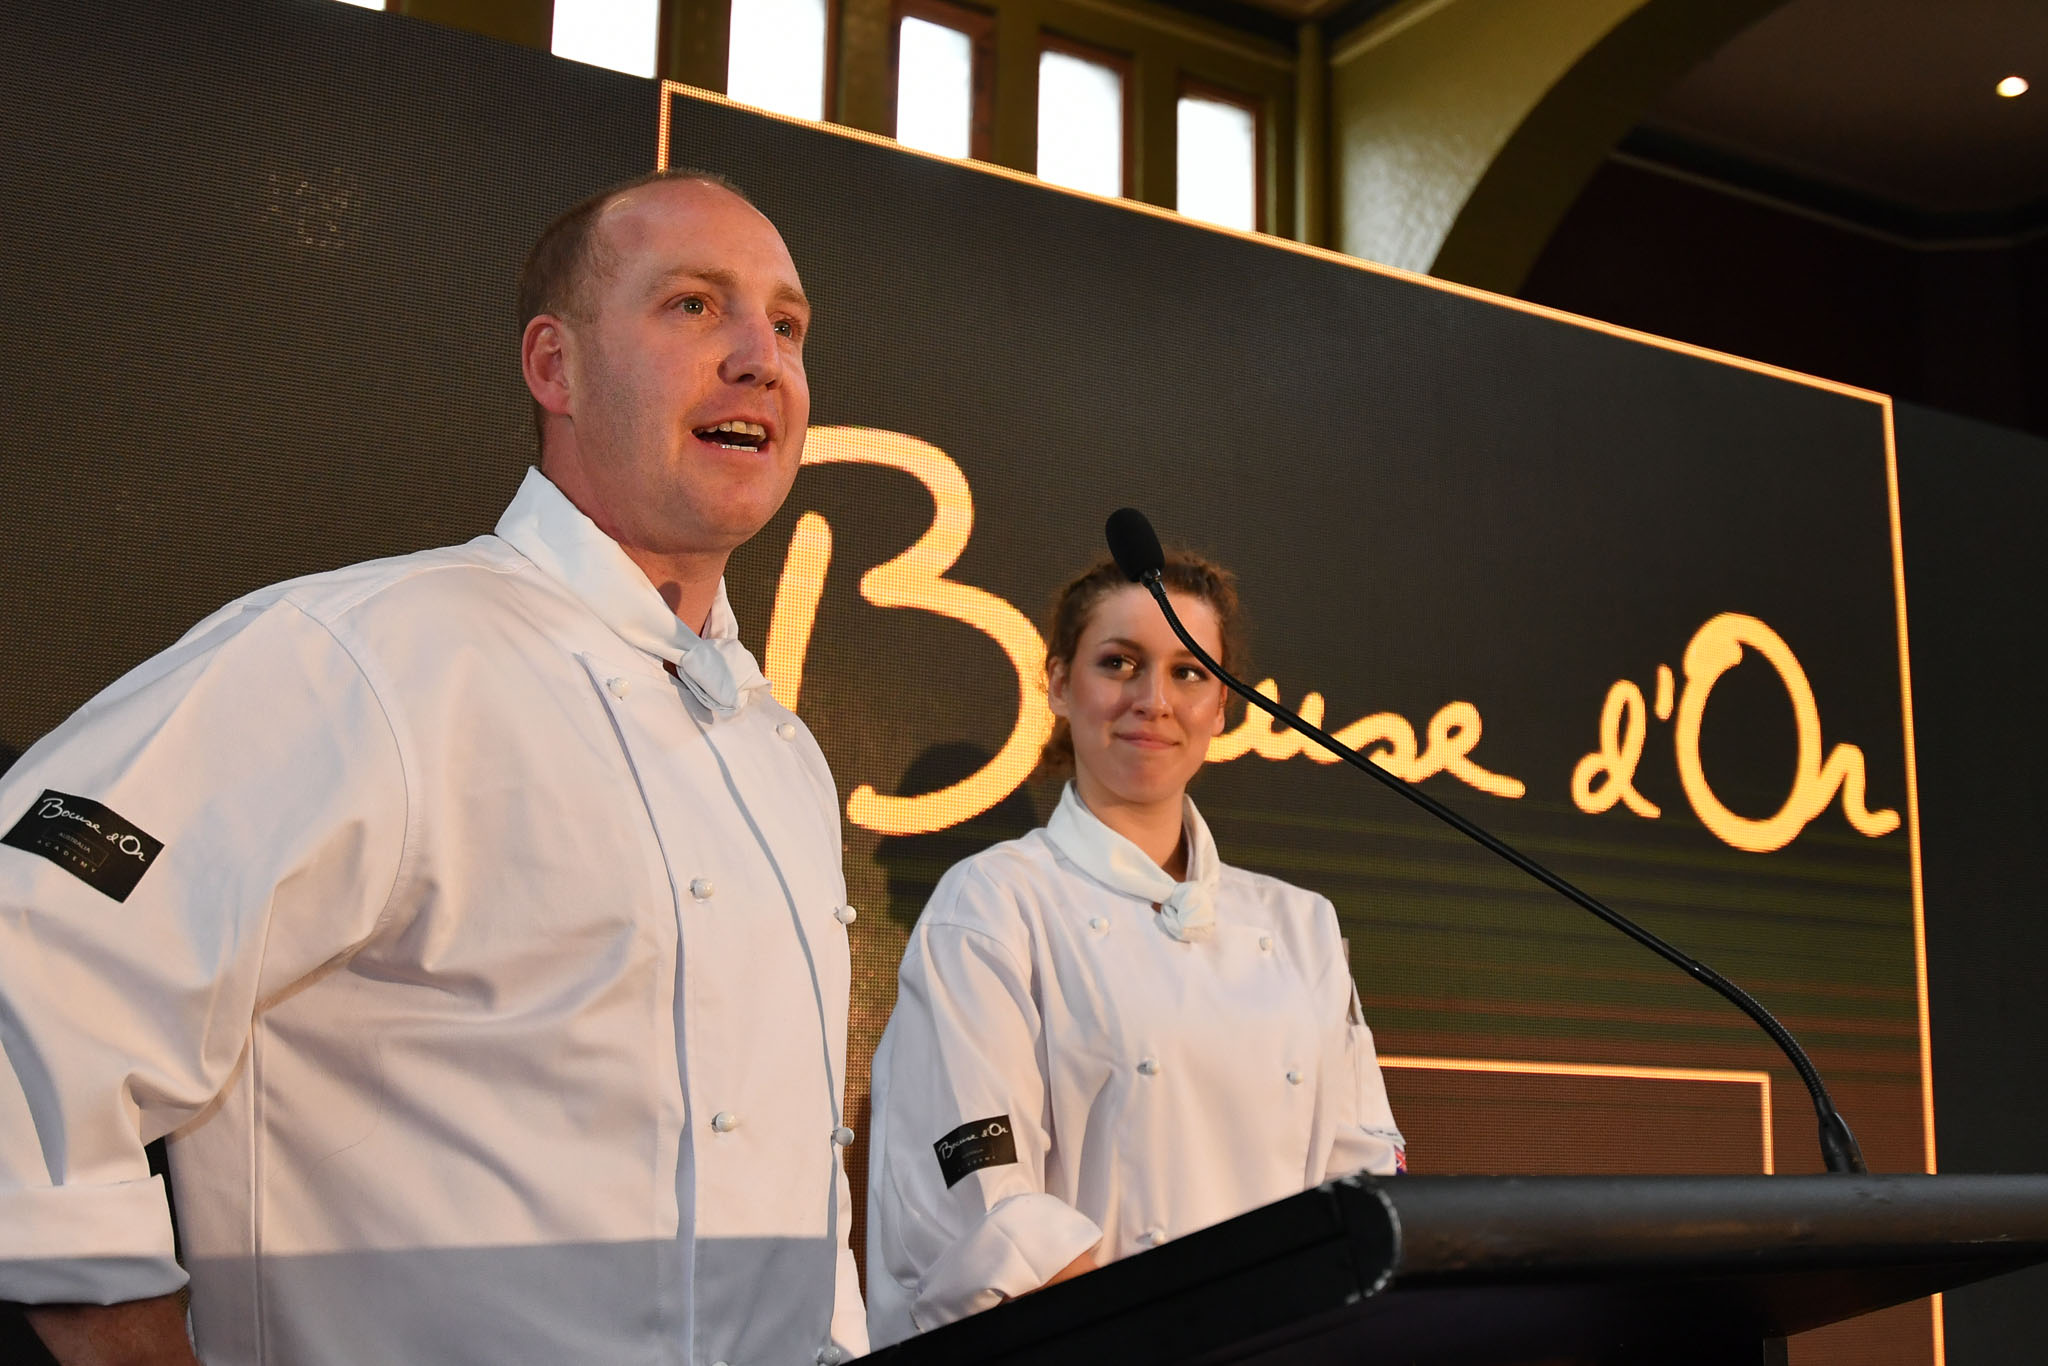 Melbourne, 30 May 2017 - Michael Cole and Laura Skvor of the Georgie Bass Café & Cookery in Flinders speaks to the audience after winning the Australian selection trials of the Bocuse d'Or culinary competition held during the Food Service Australia show at the Royal Exhibition Building in Melbourne, Australia. Photo Sydney Low